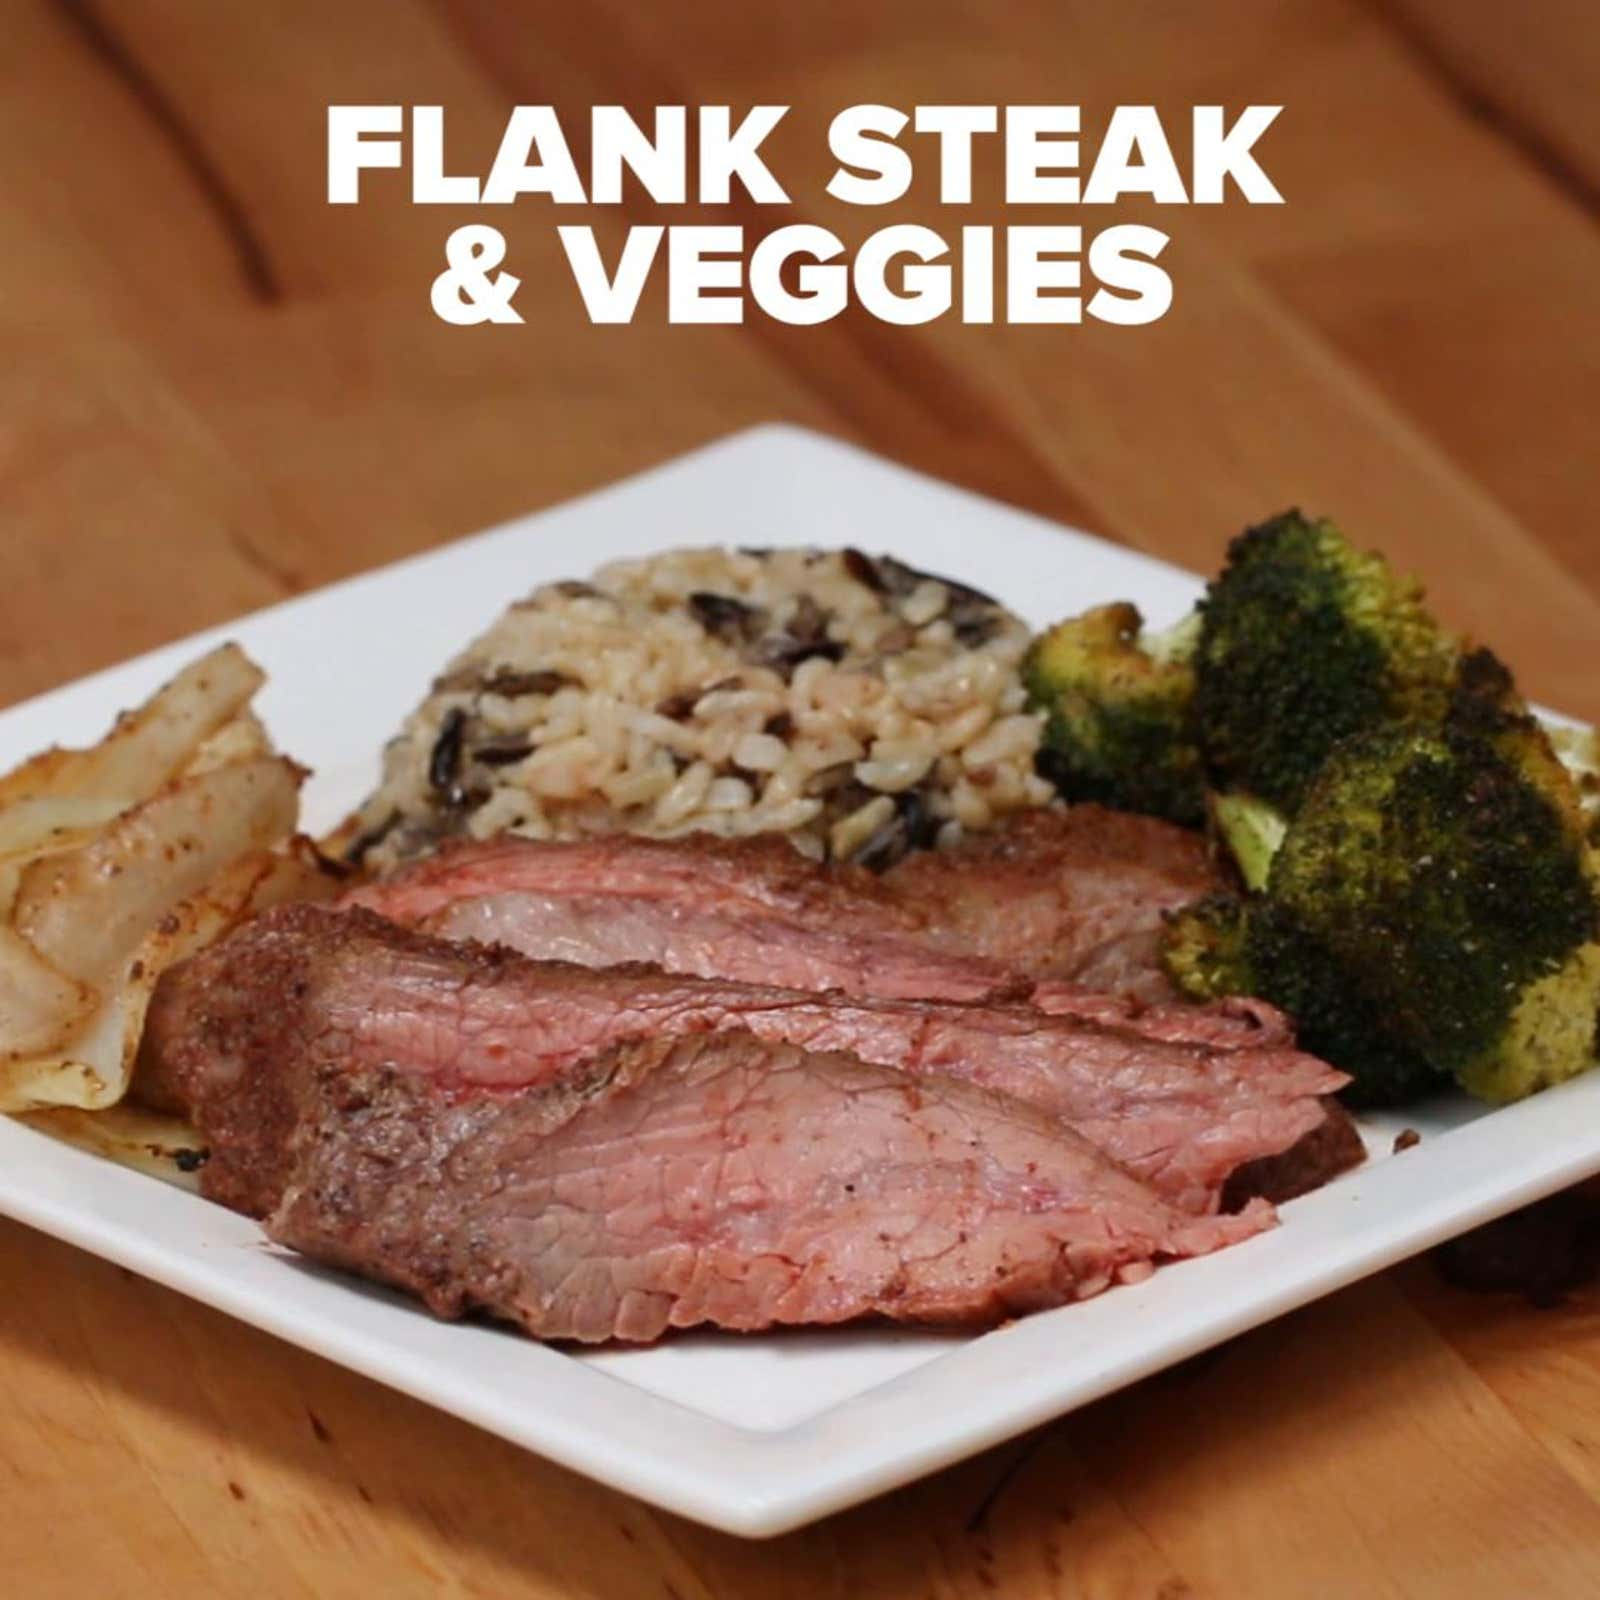 One-pan Flank Steak & Veggies